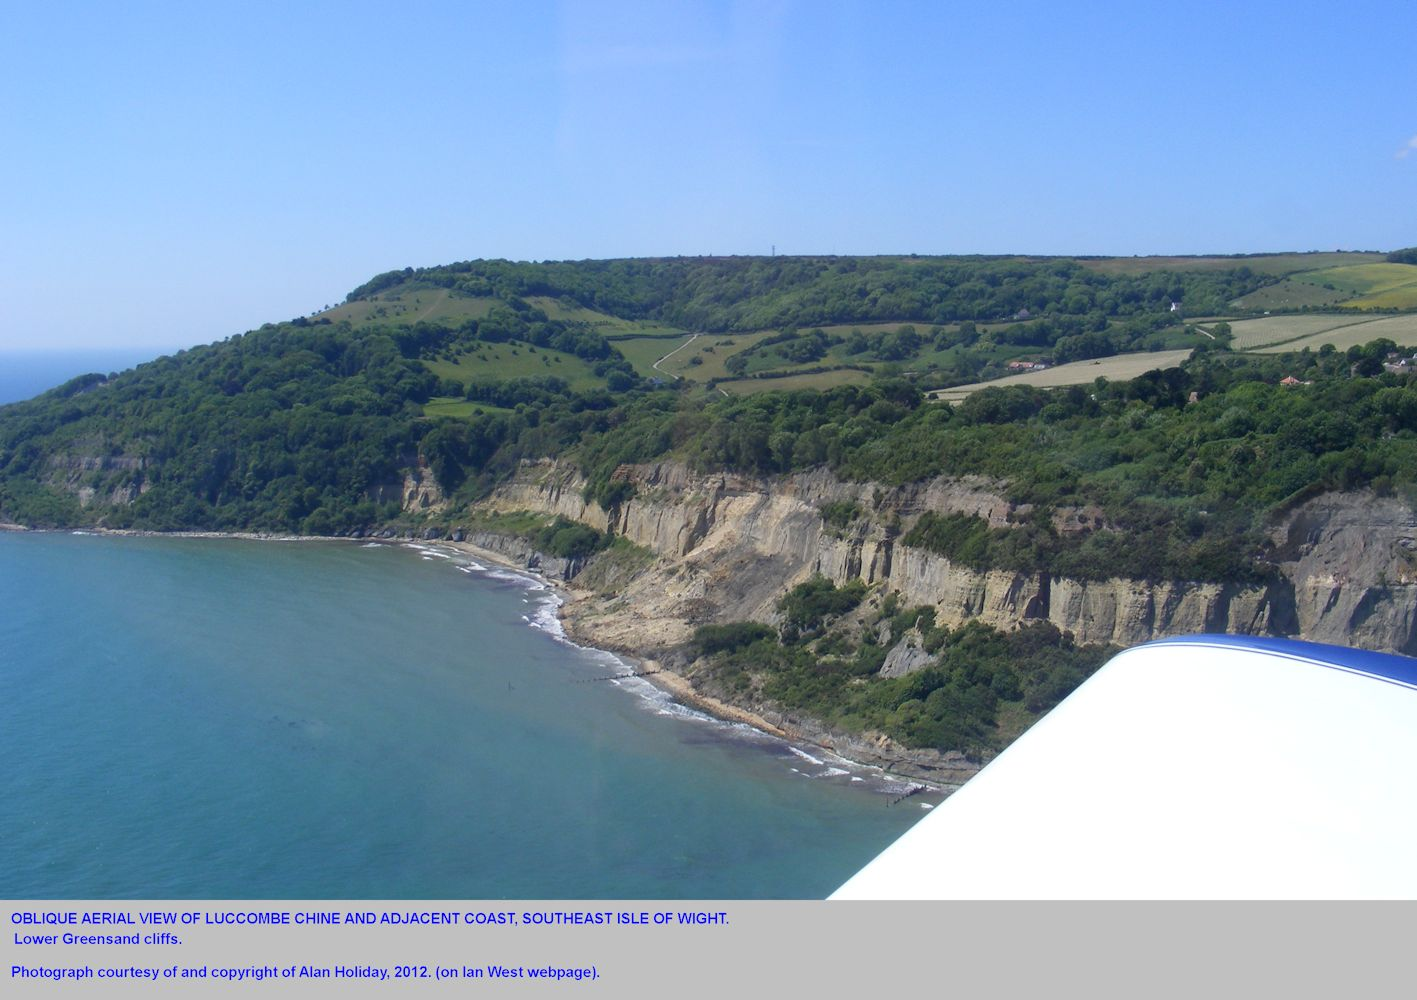 Oblique aerial view of the Lower Greensand cliffs at Luccombe Chine, Isle of Wight, and adjacent area, 2011